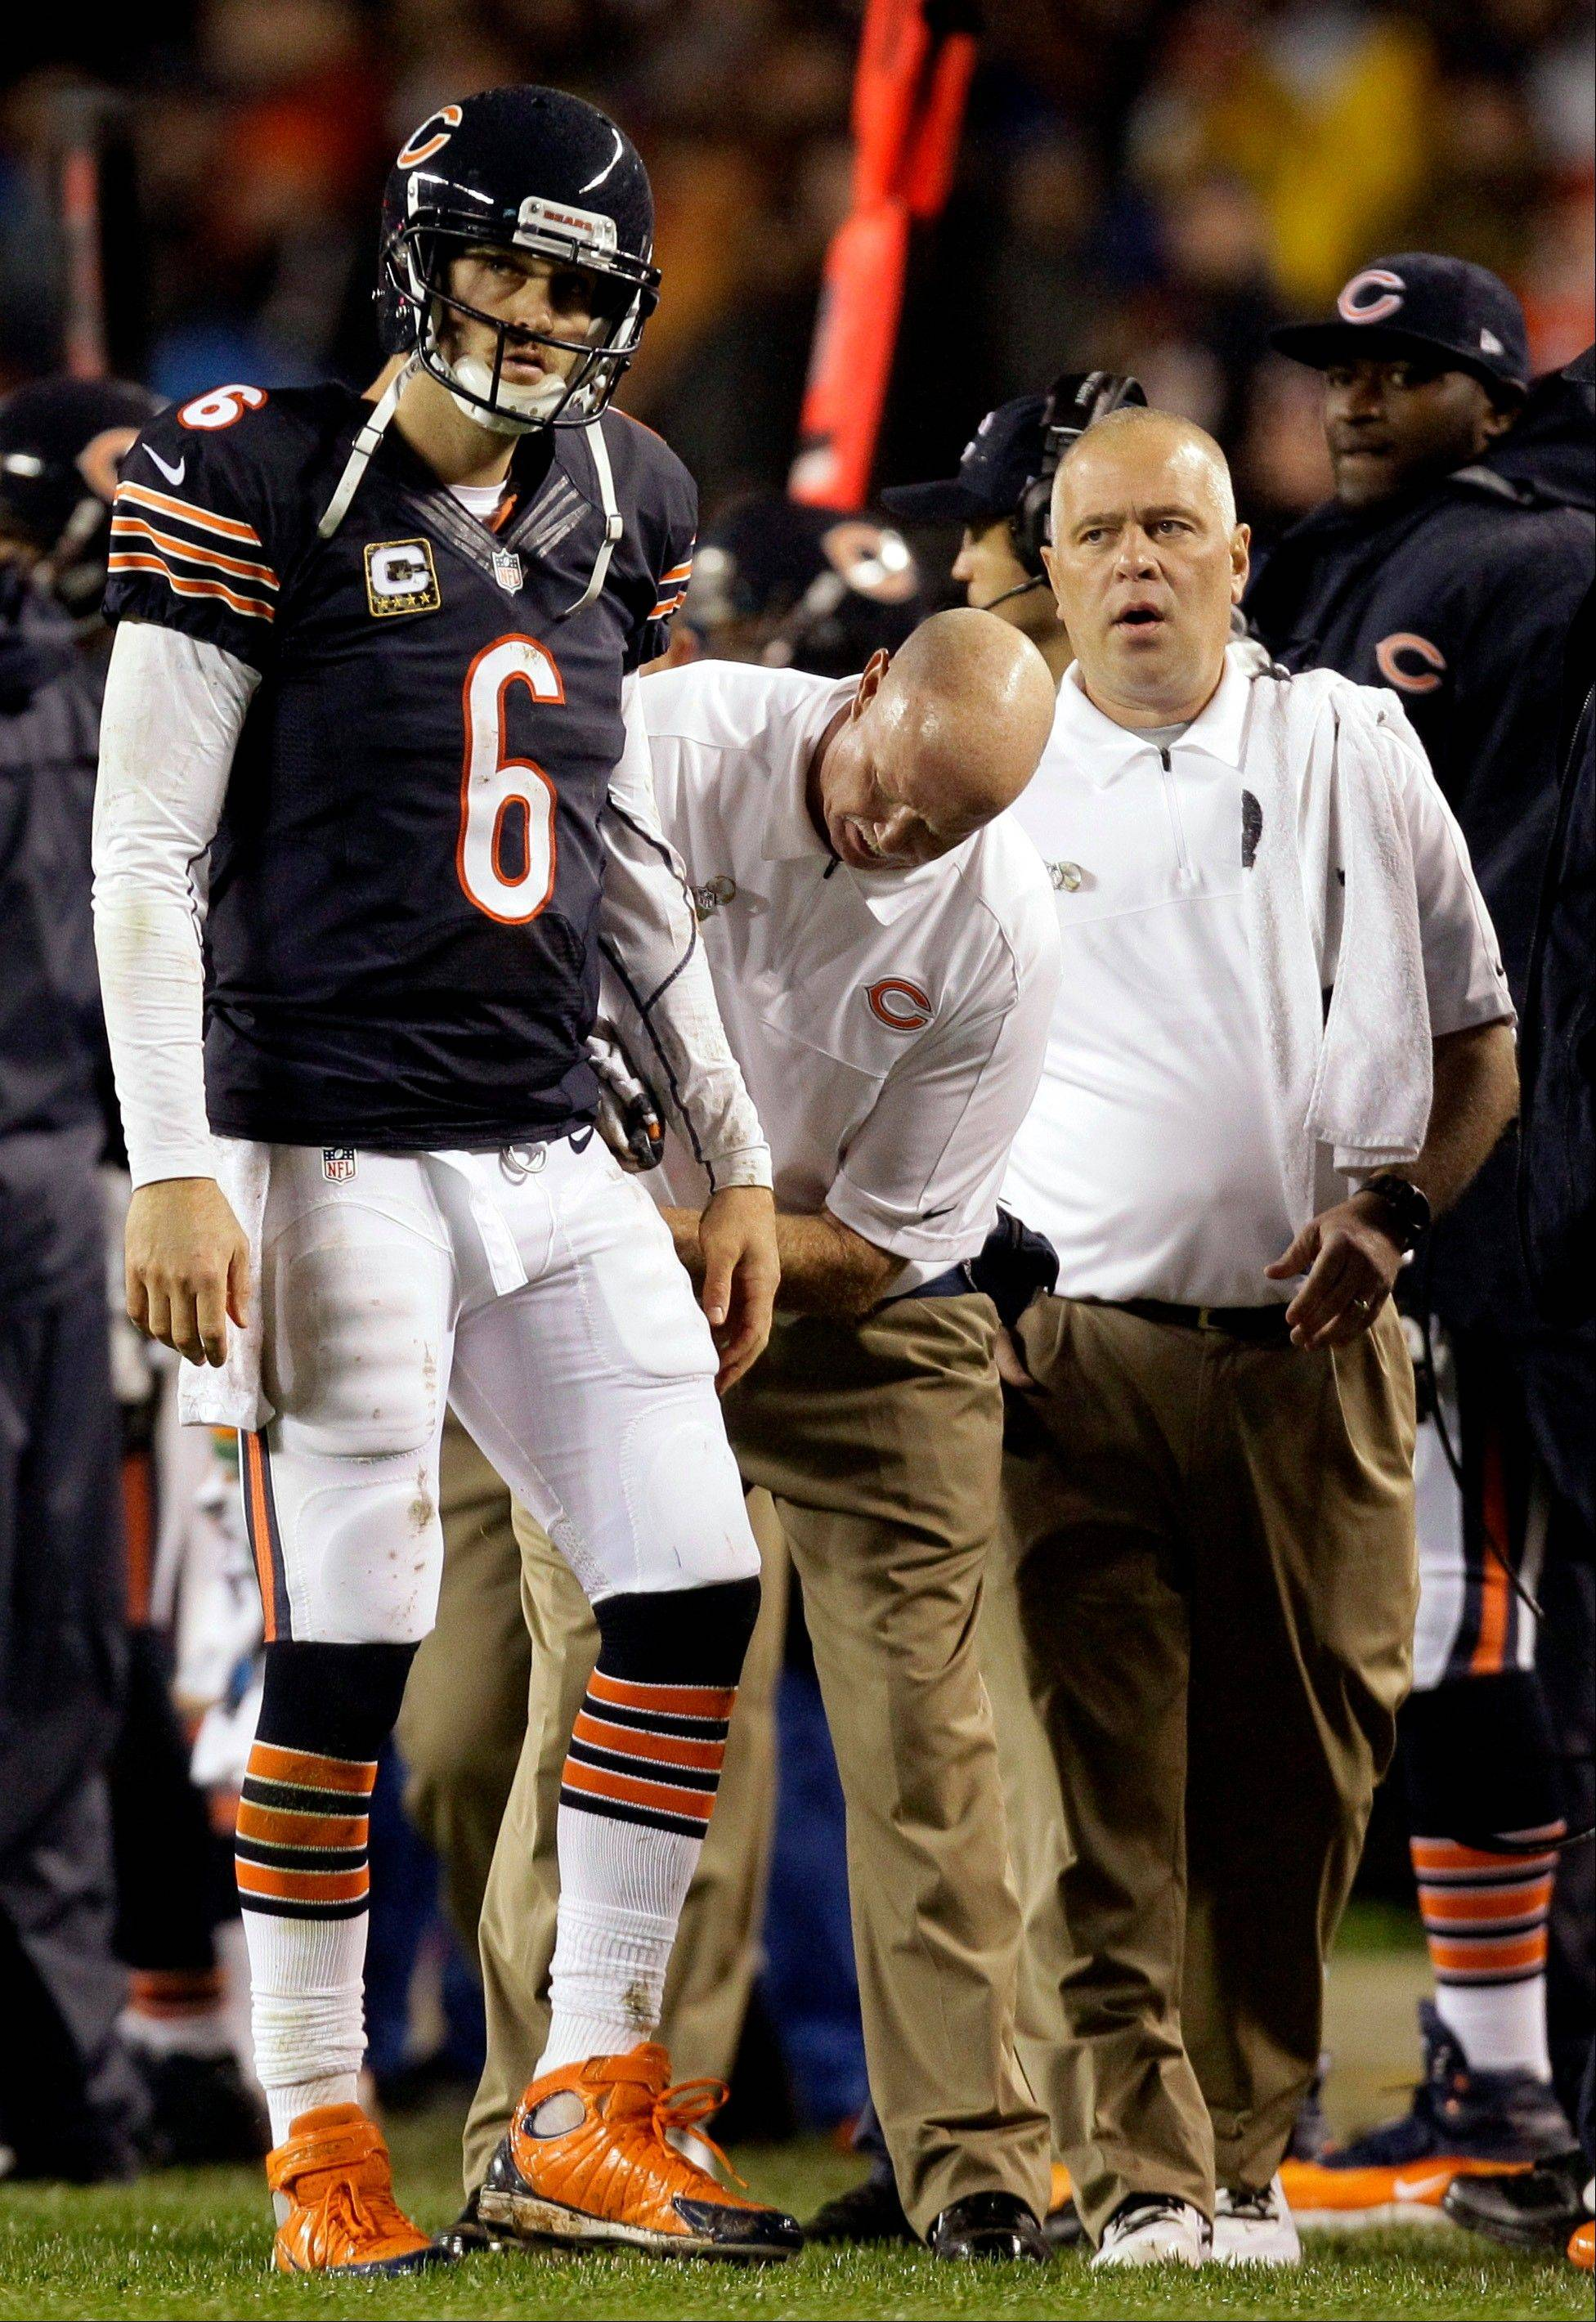 Trainers look at Bears quarterback Jay Cutler after Cutler took a late hit by Texans linebacker Tim Dobbins in the first half last Sunday. Dobbins was called for an unnecessary roughness penalty, and Cutler did not return in the second half after suffering a concussion.